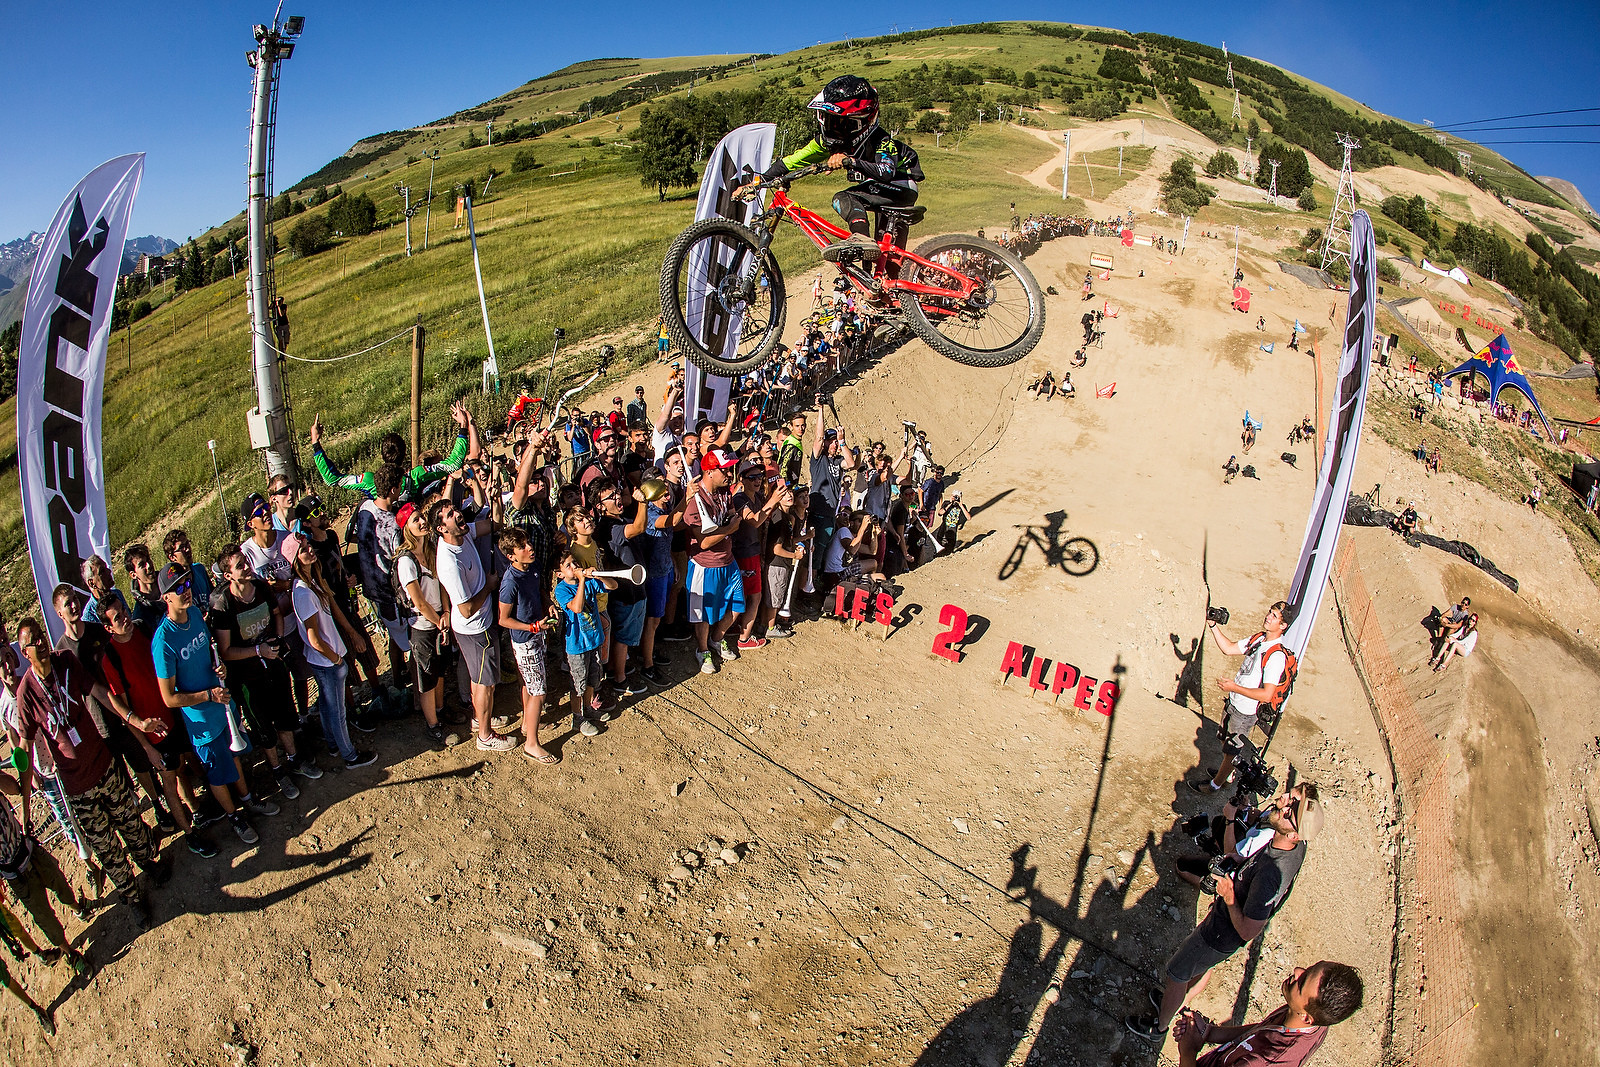 Jackson Goldstone, Whip Off European Champs, Crankworx L2A - Whip Off European Champs, Crankworx L2A - Mountain Biking Pictures - Vital MTB